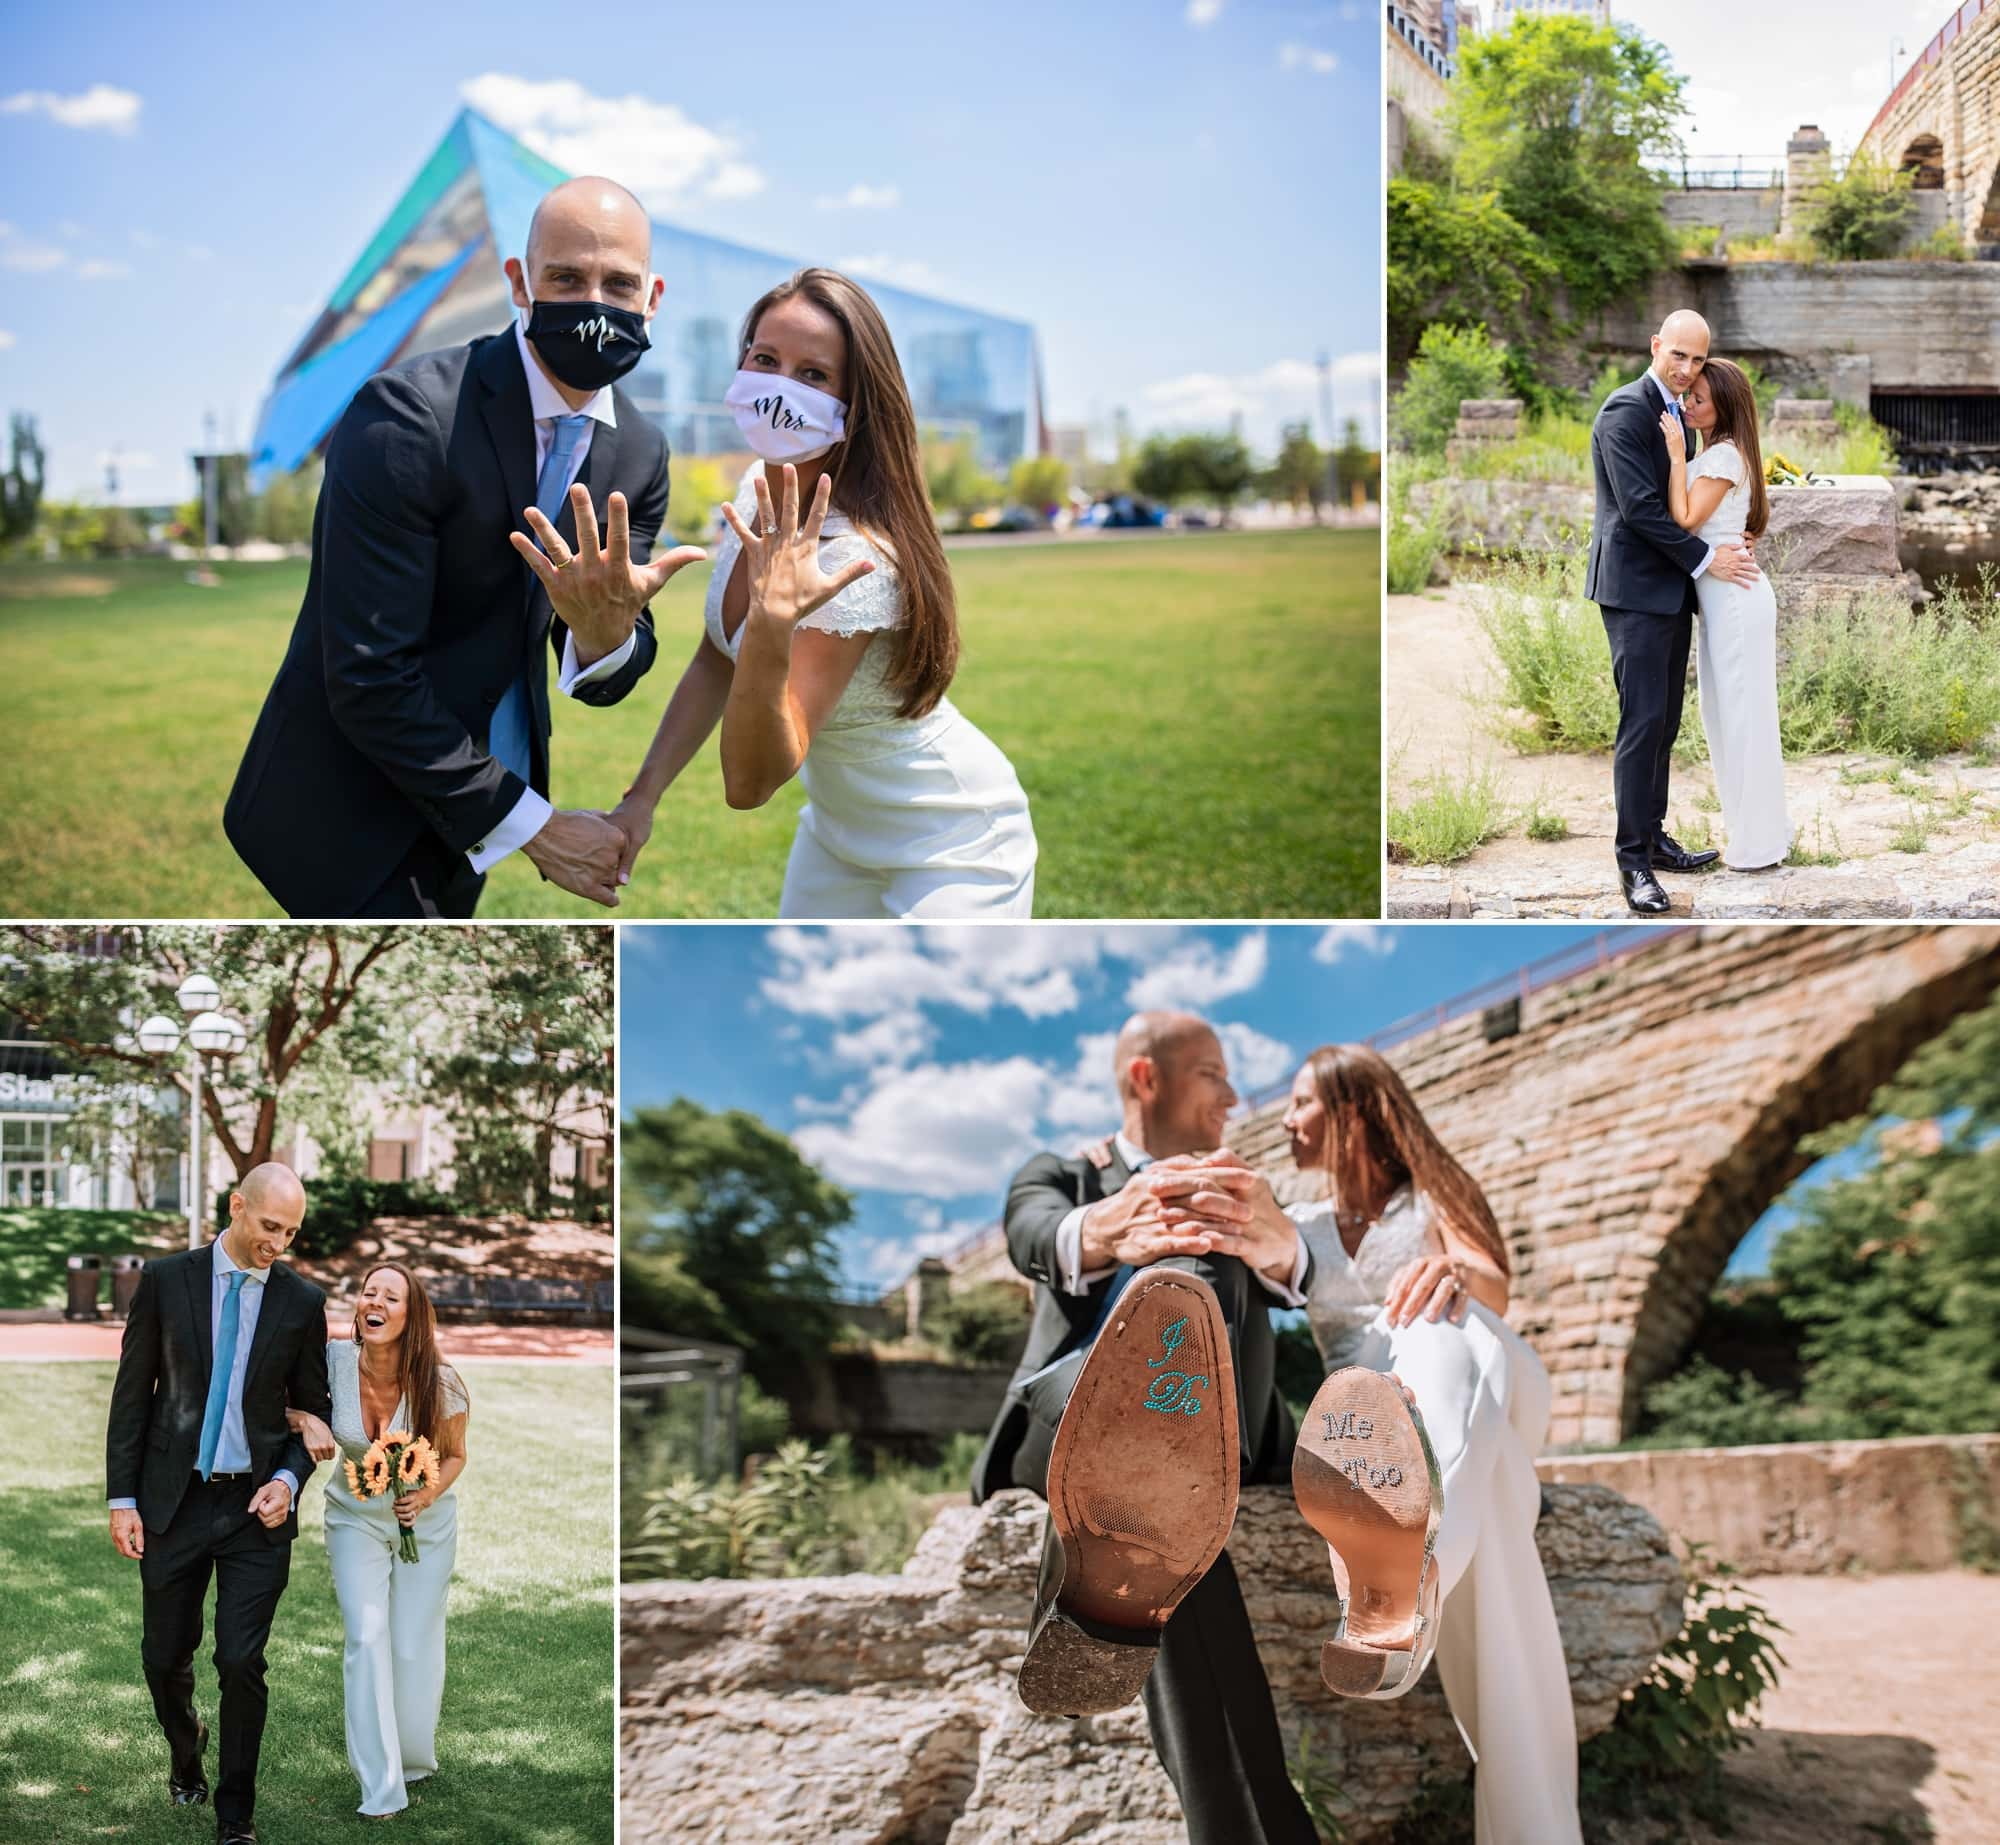 Rick and Carlota's wedding photos for their downtown Minneapolis elopement.